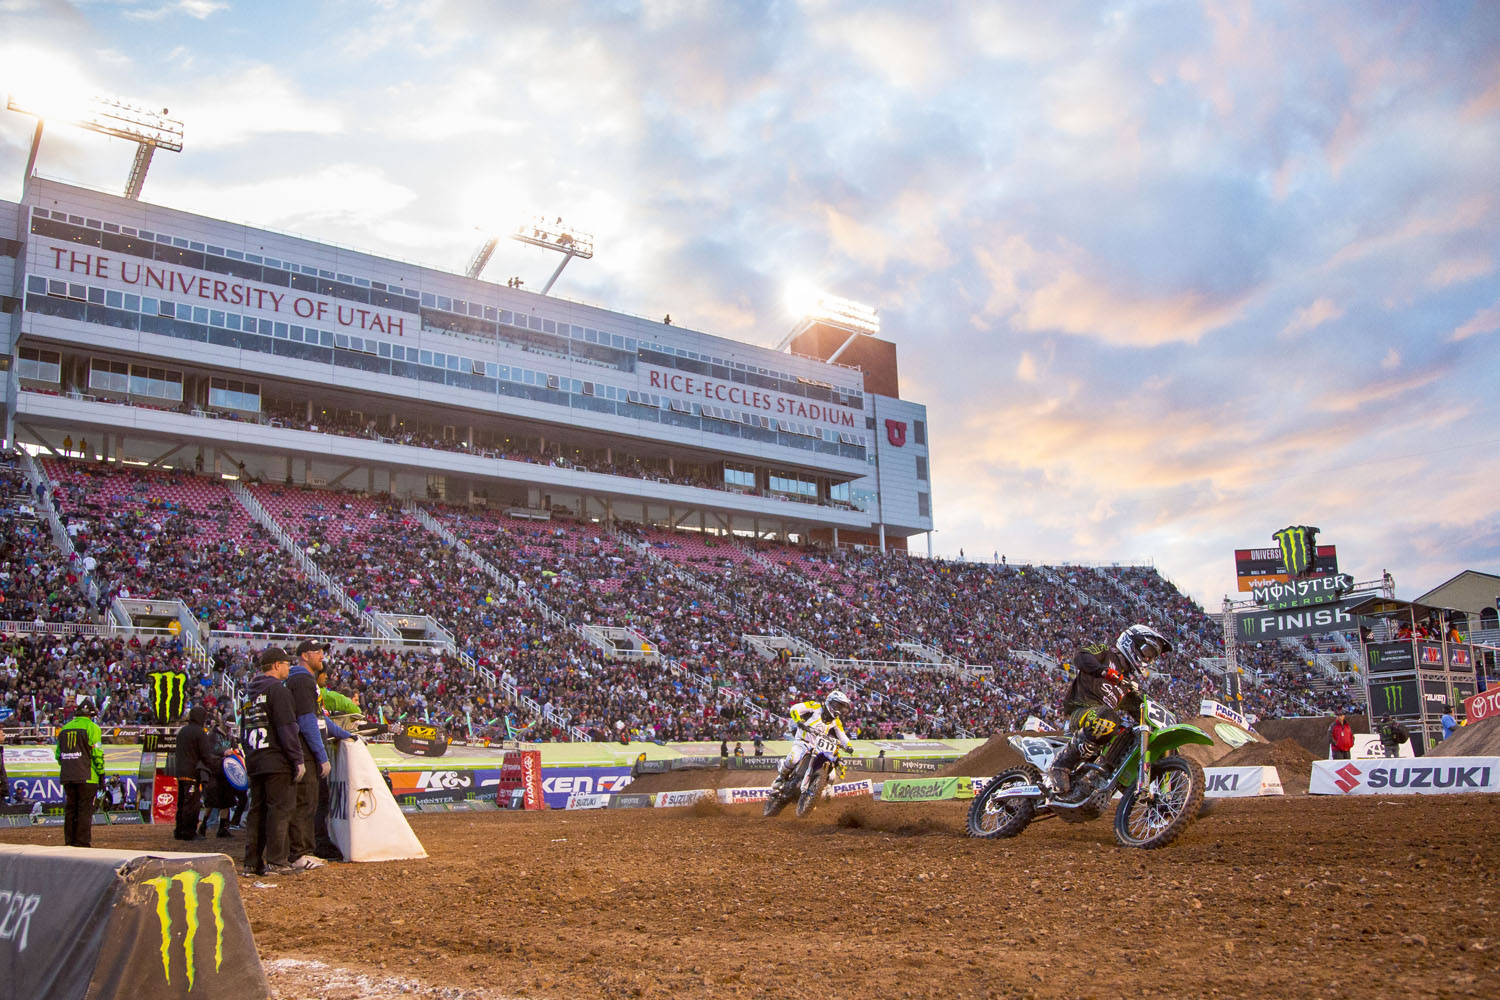 Riders race at dusk at the Monster Energy AMA Supercross race at Rice-Eccles Stadium in Salt Lake City, Utah.